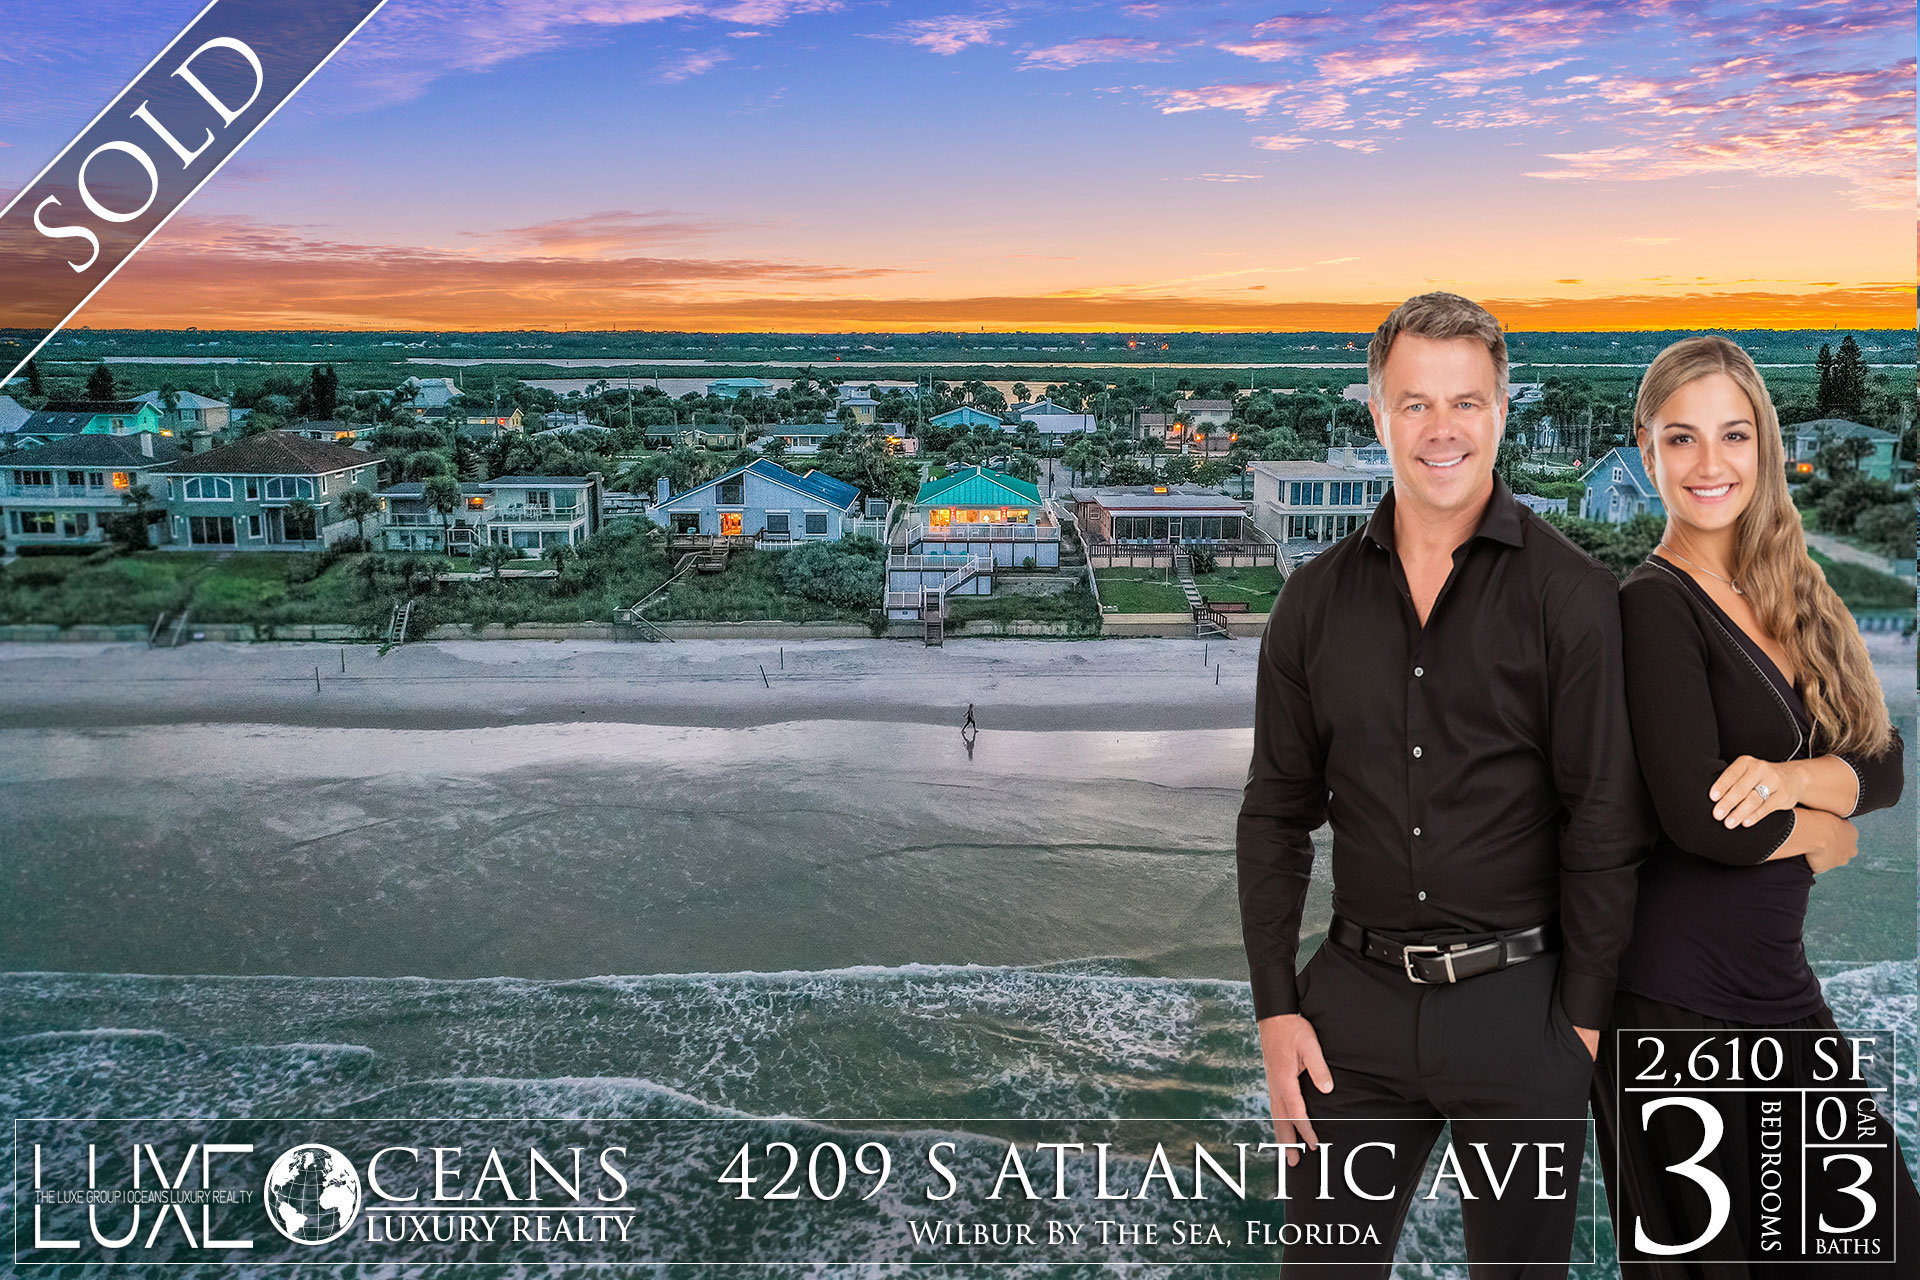 Ponce Inlet Oceanfront Homes For Sale- Under-Contract- 4209 S Atlantic Ave Waterfront Homes For Sale